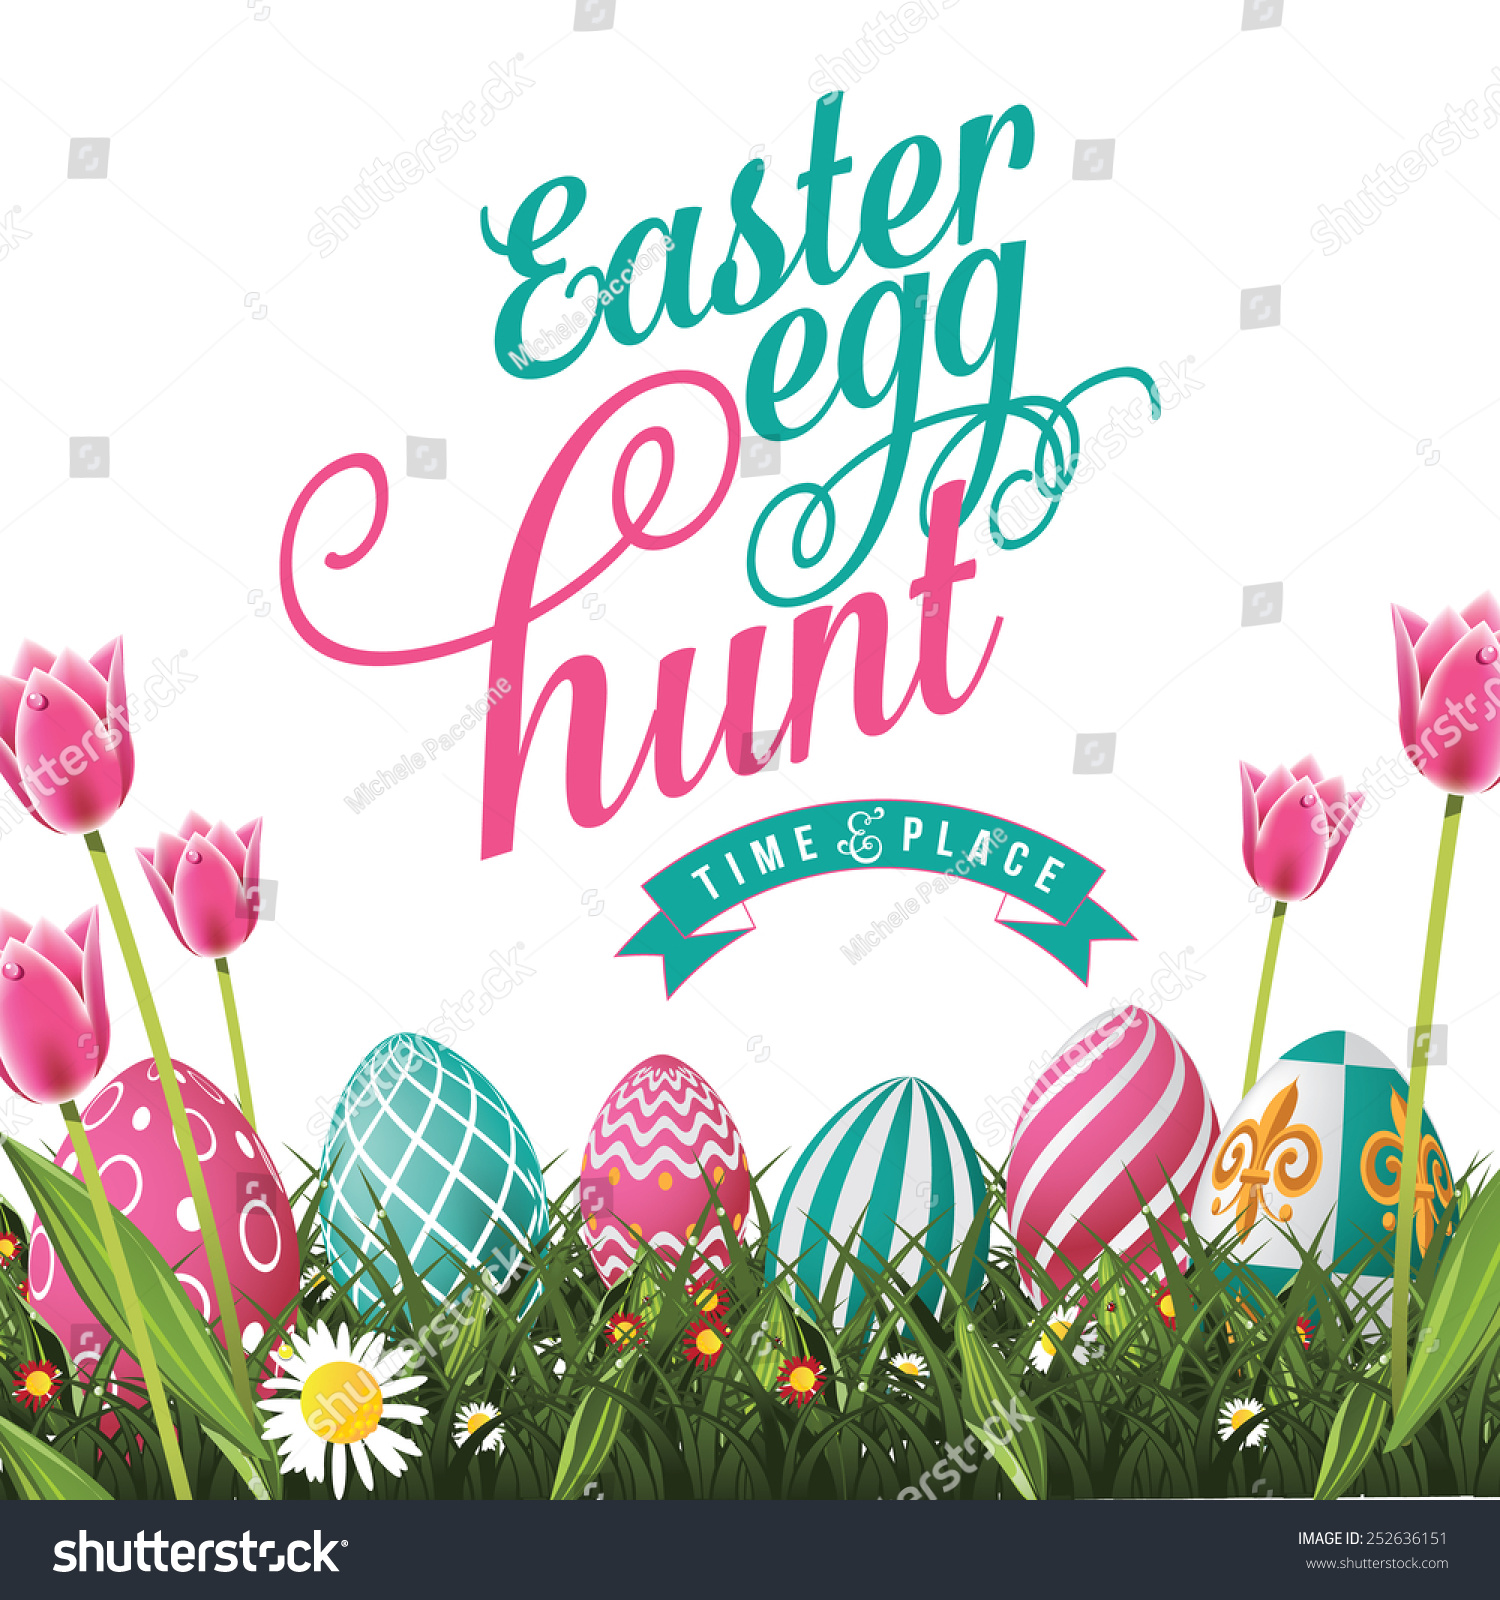 Easter Egg Hunt Isolated With White Background EPS 10 Vector Royalty Free Stock Illustration For